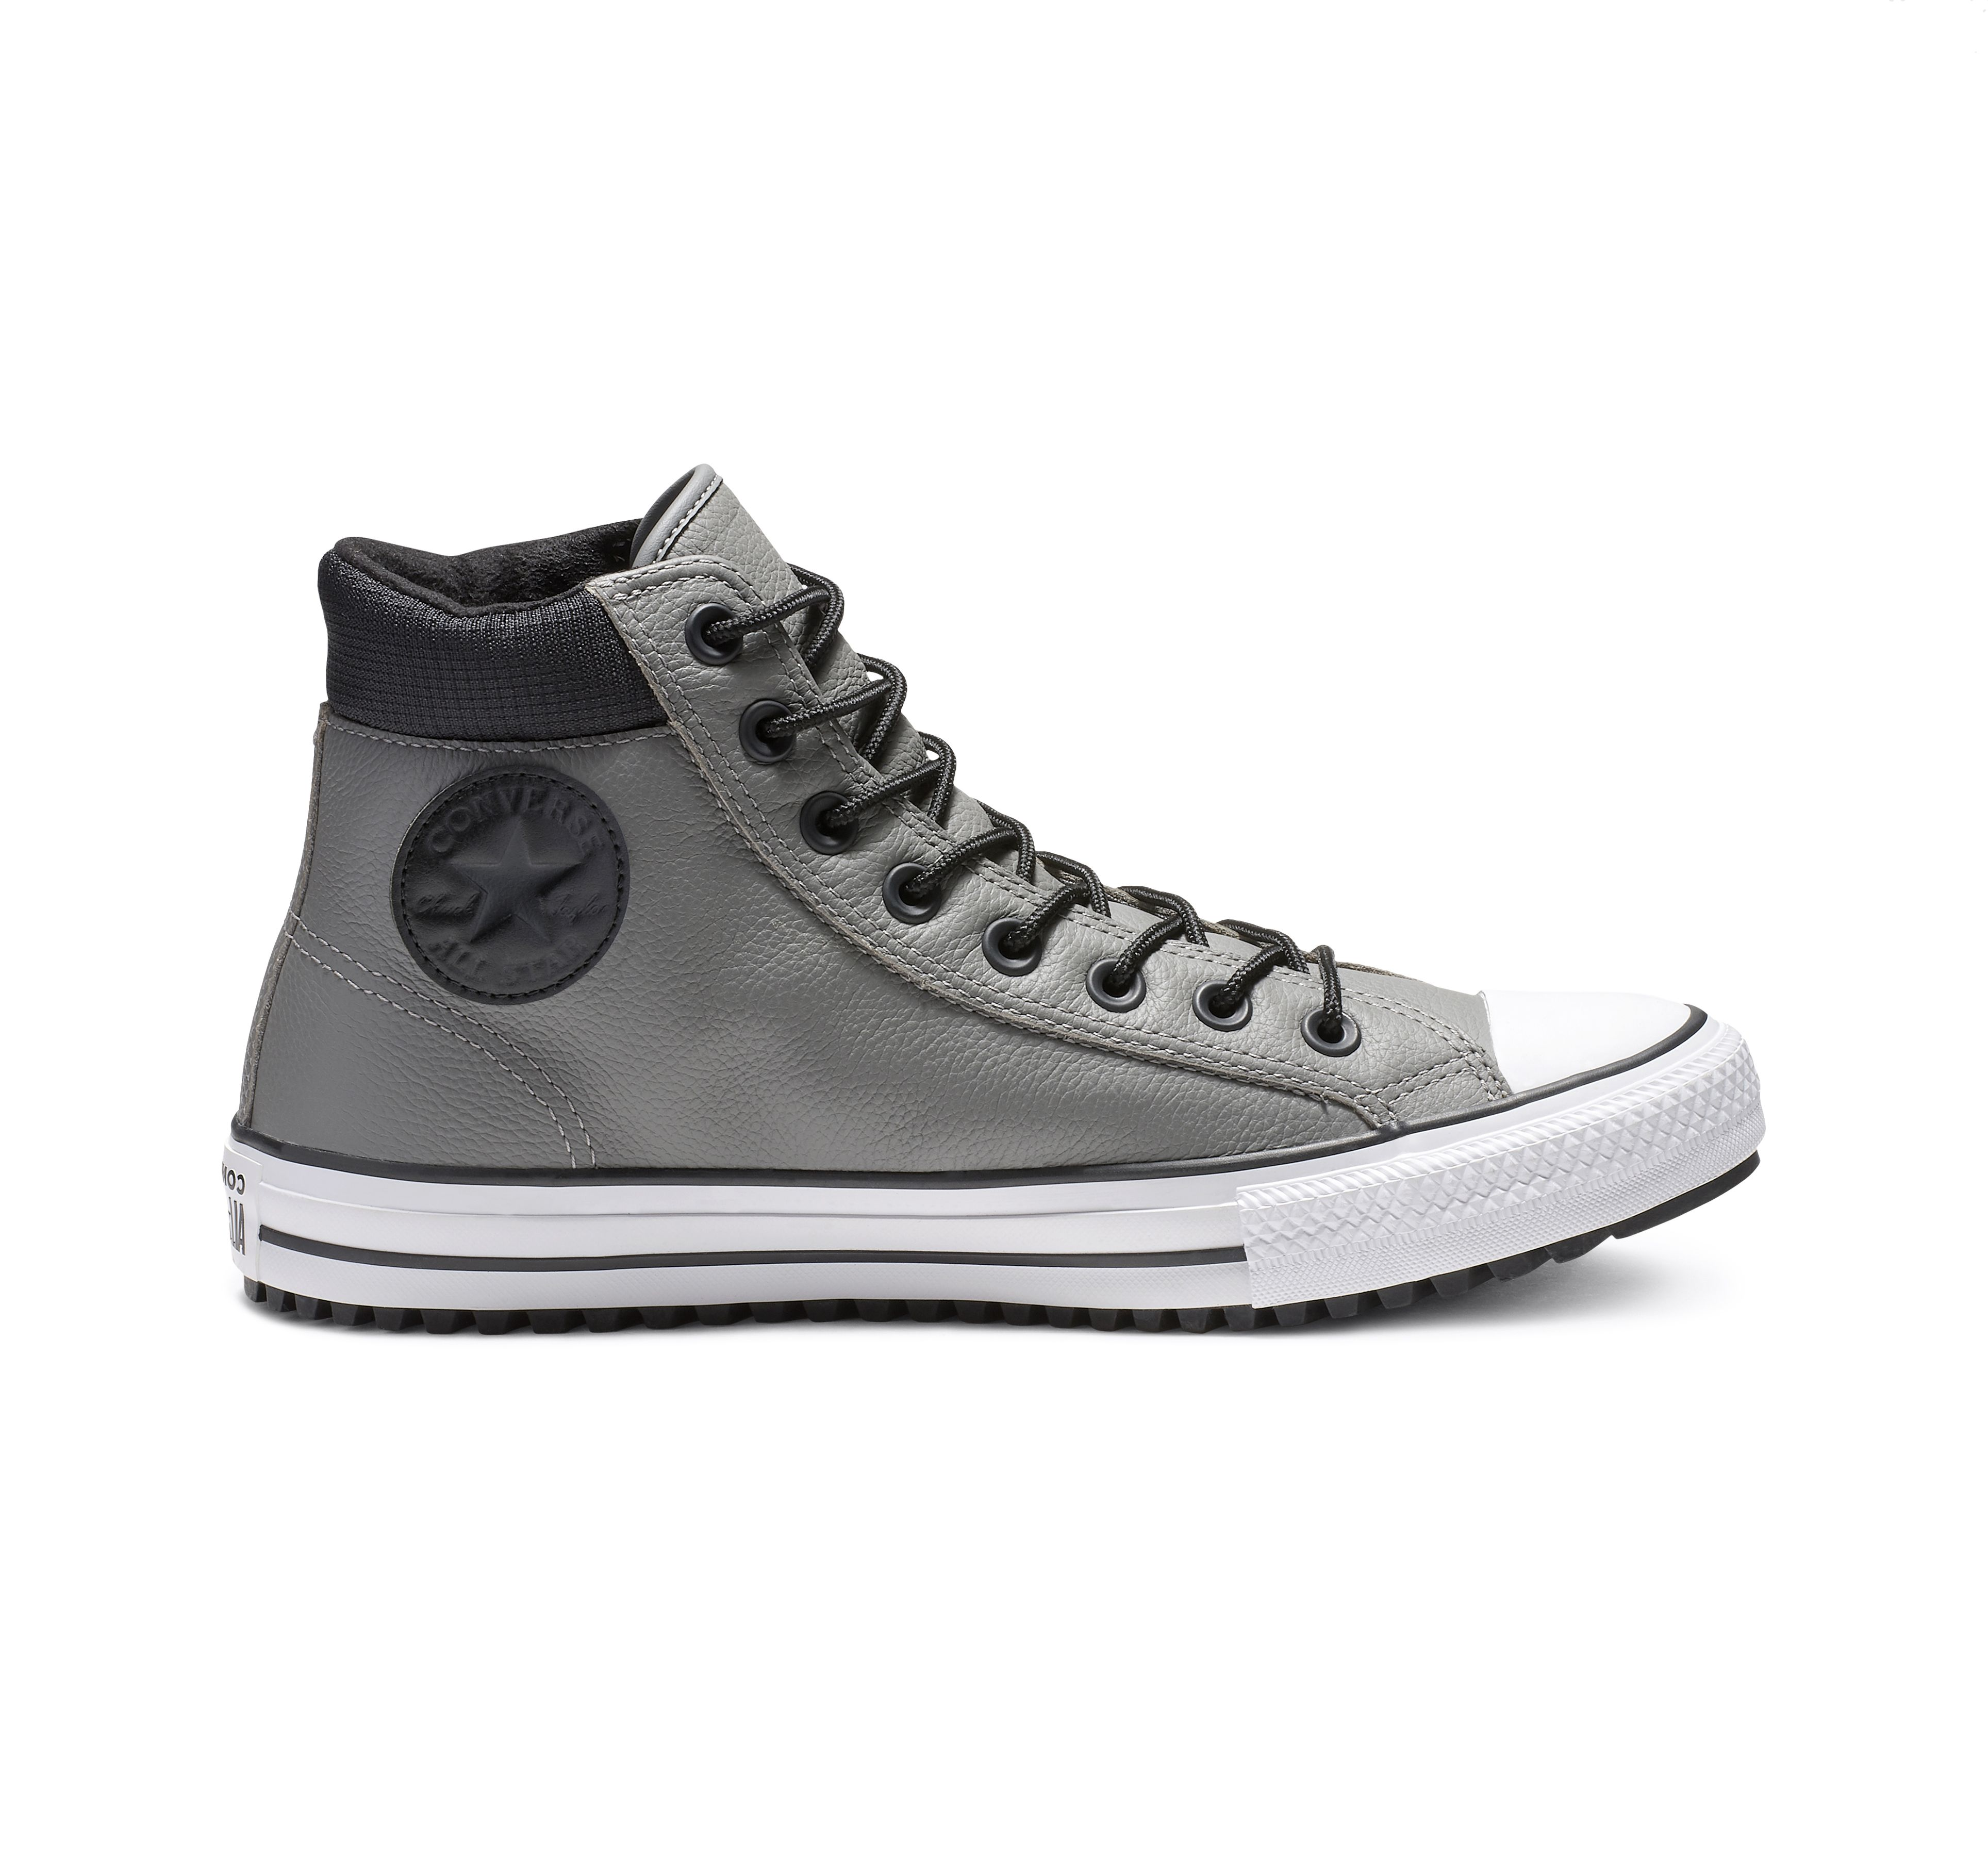 Chuck Taylor Padded Collar Leather High Top in 2020 | Chuck